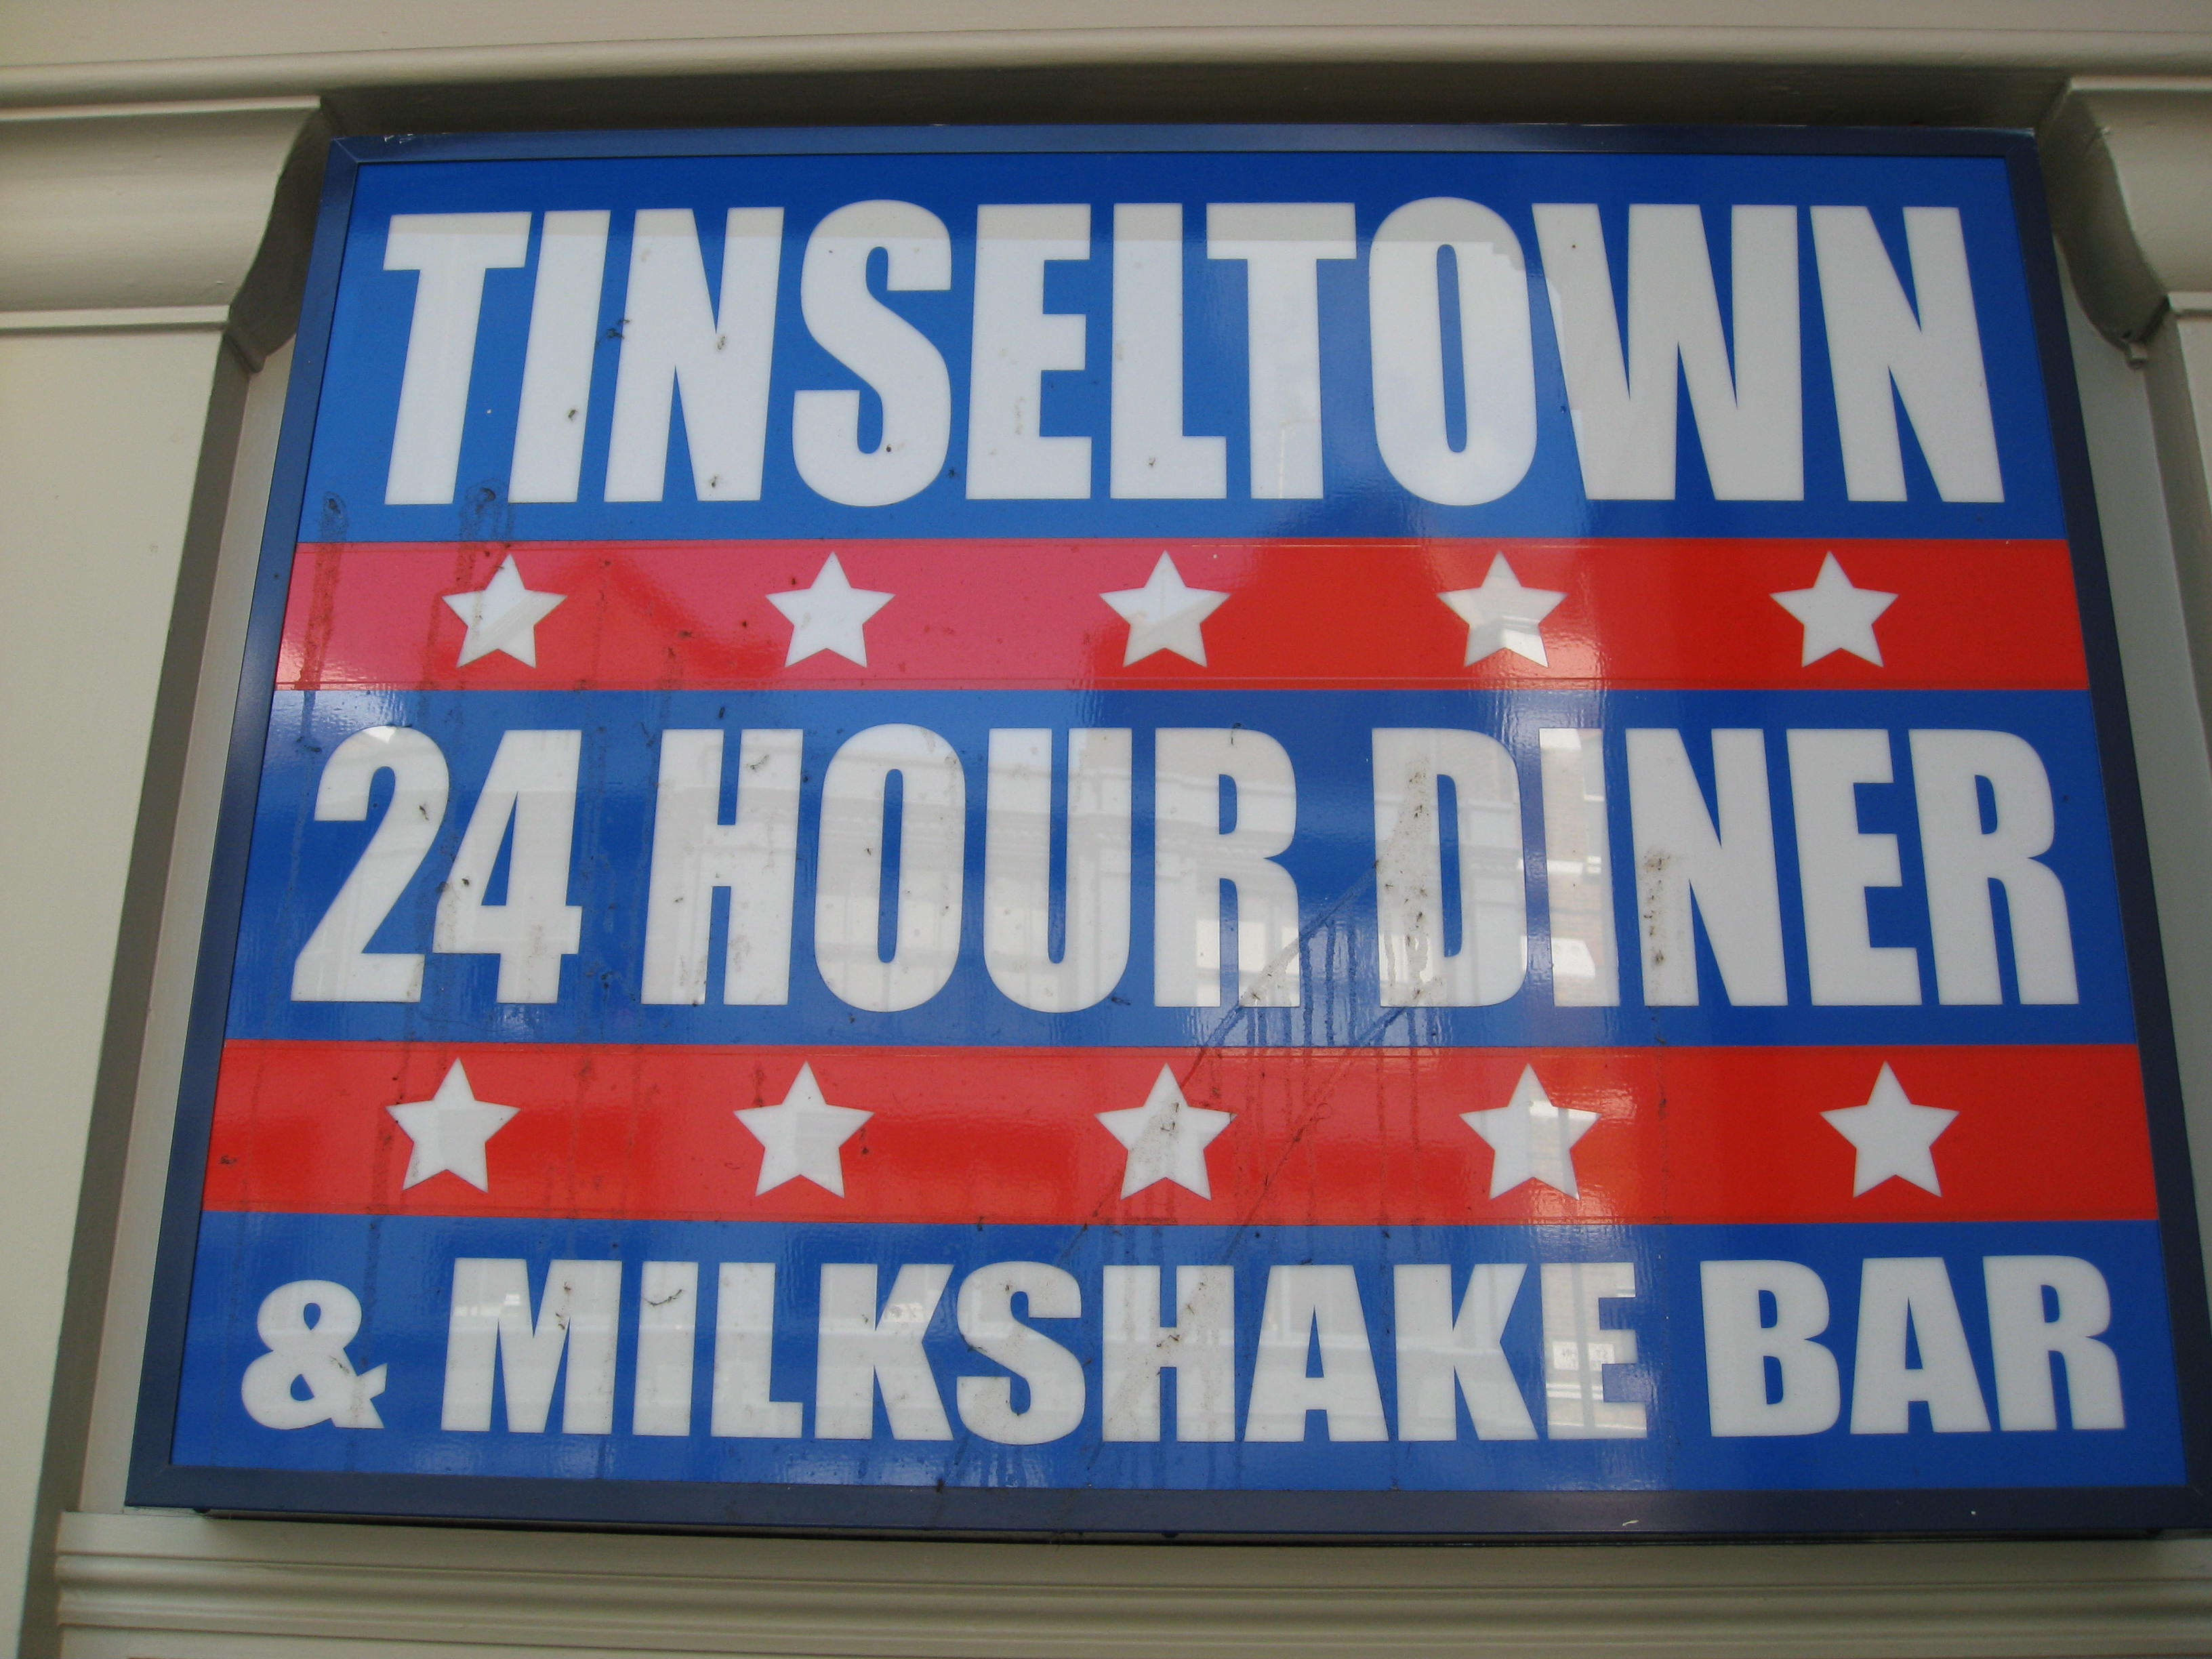 Tinseltown 24 Hour Diner London